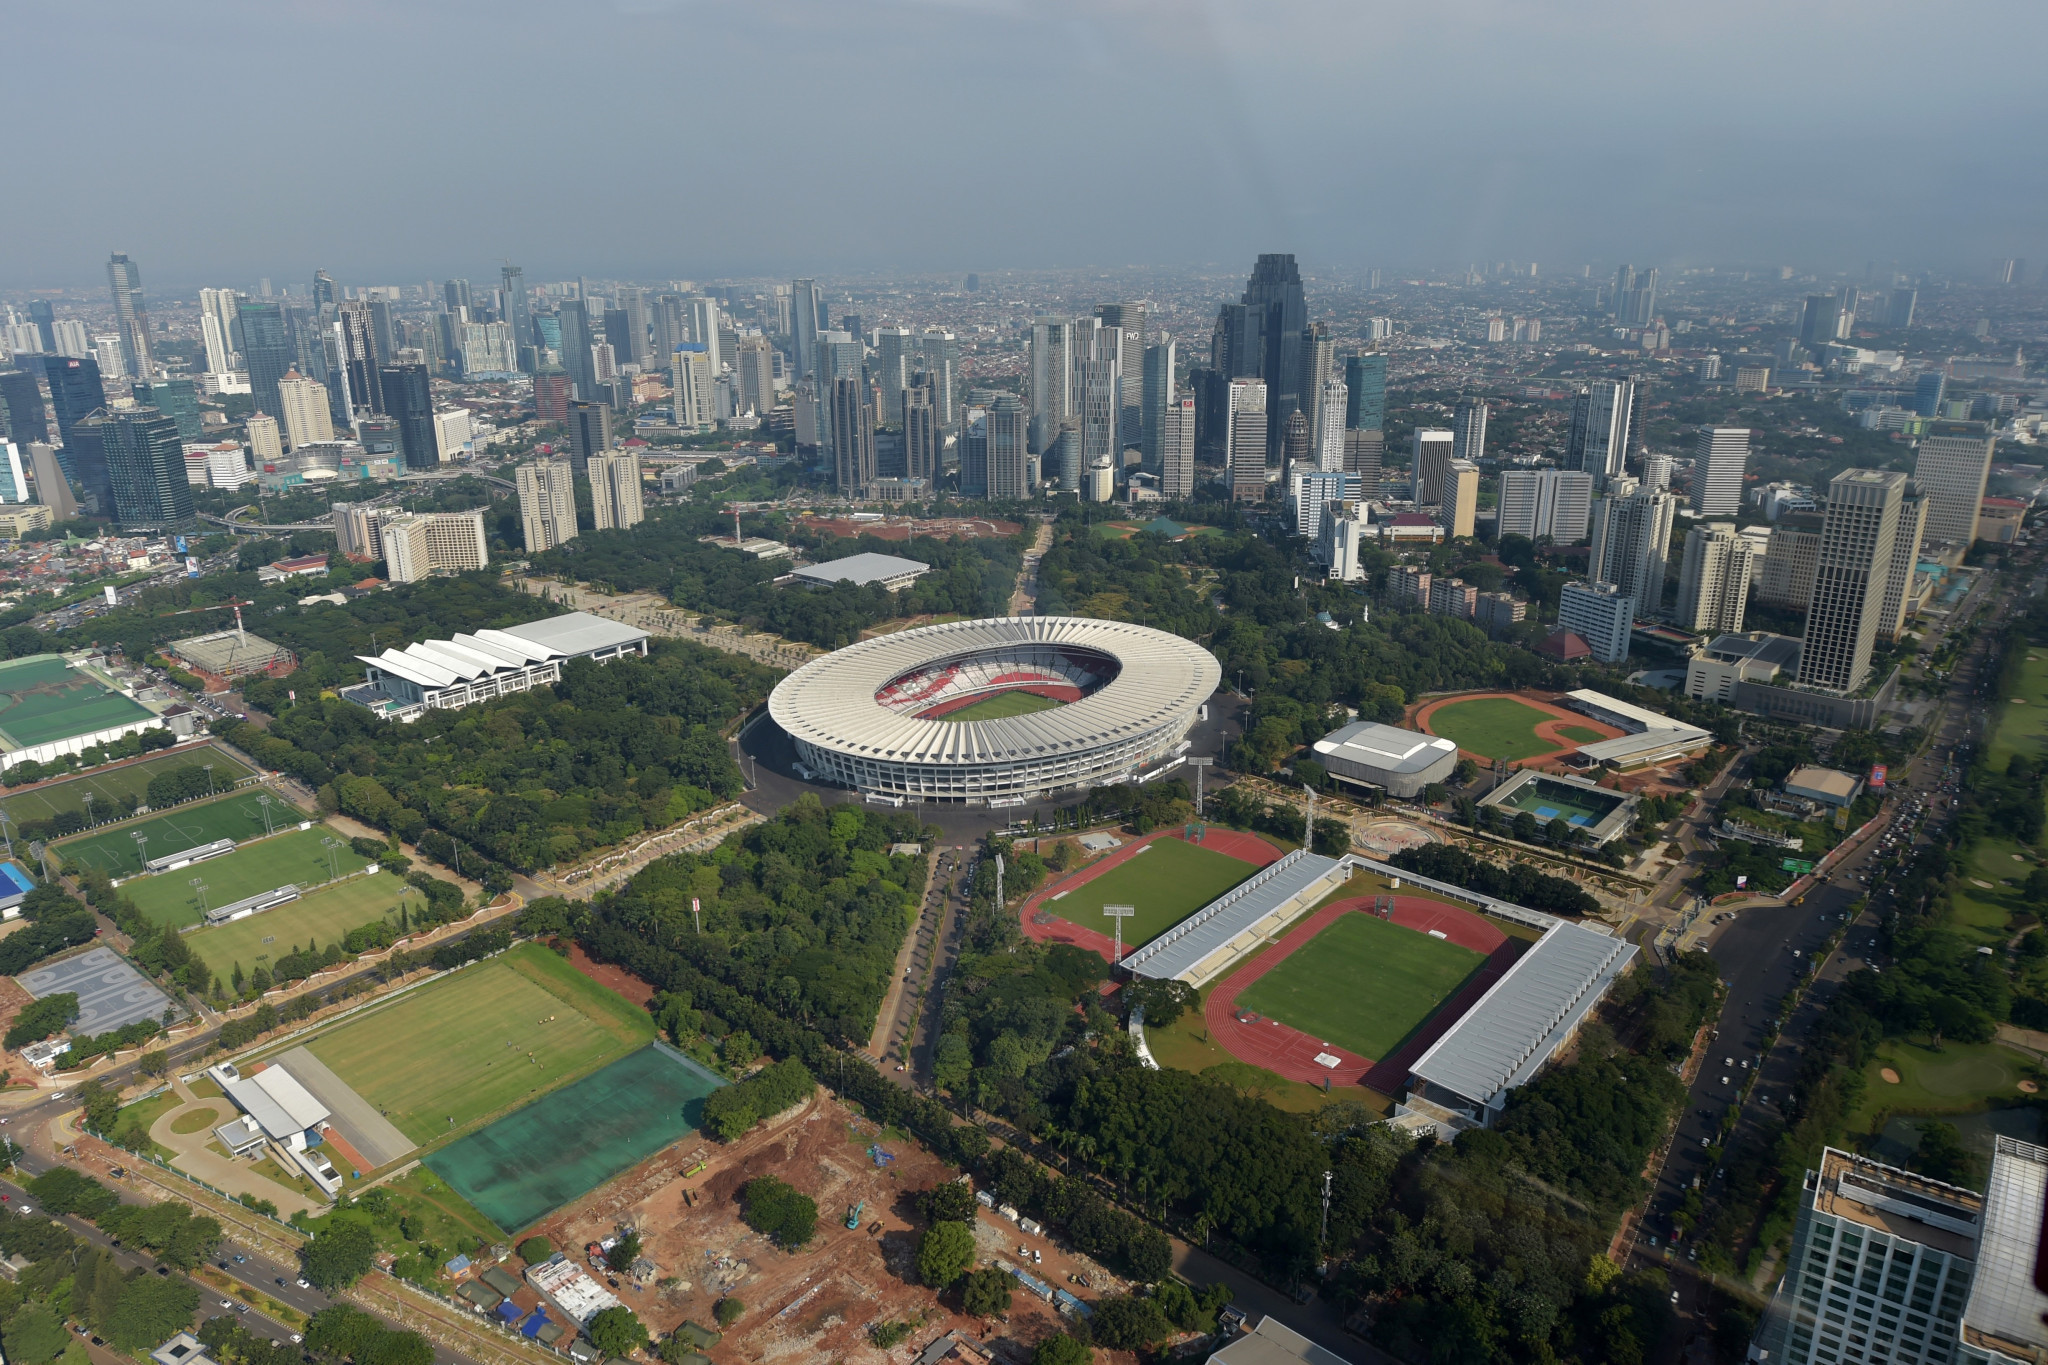 Asian Games organisers express concerns over potential cyber attacks